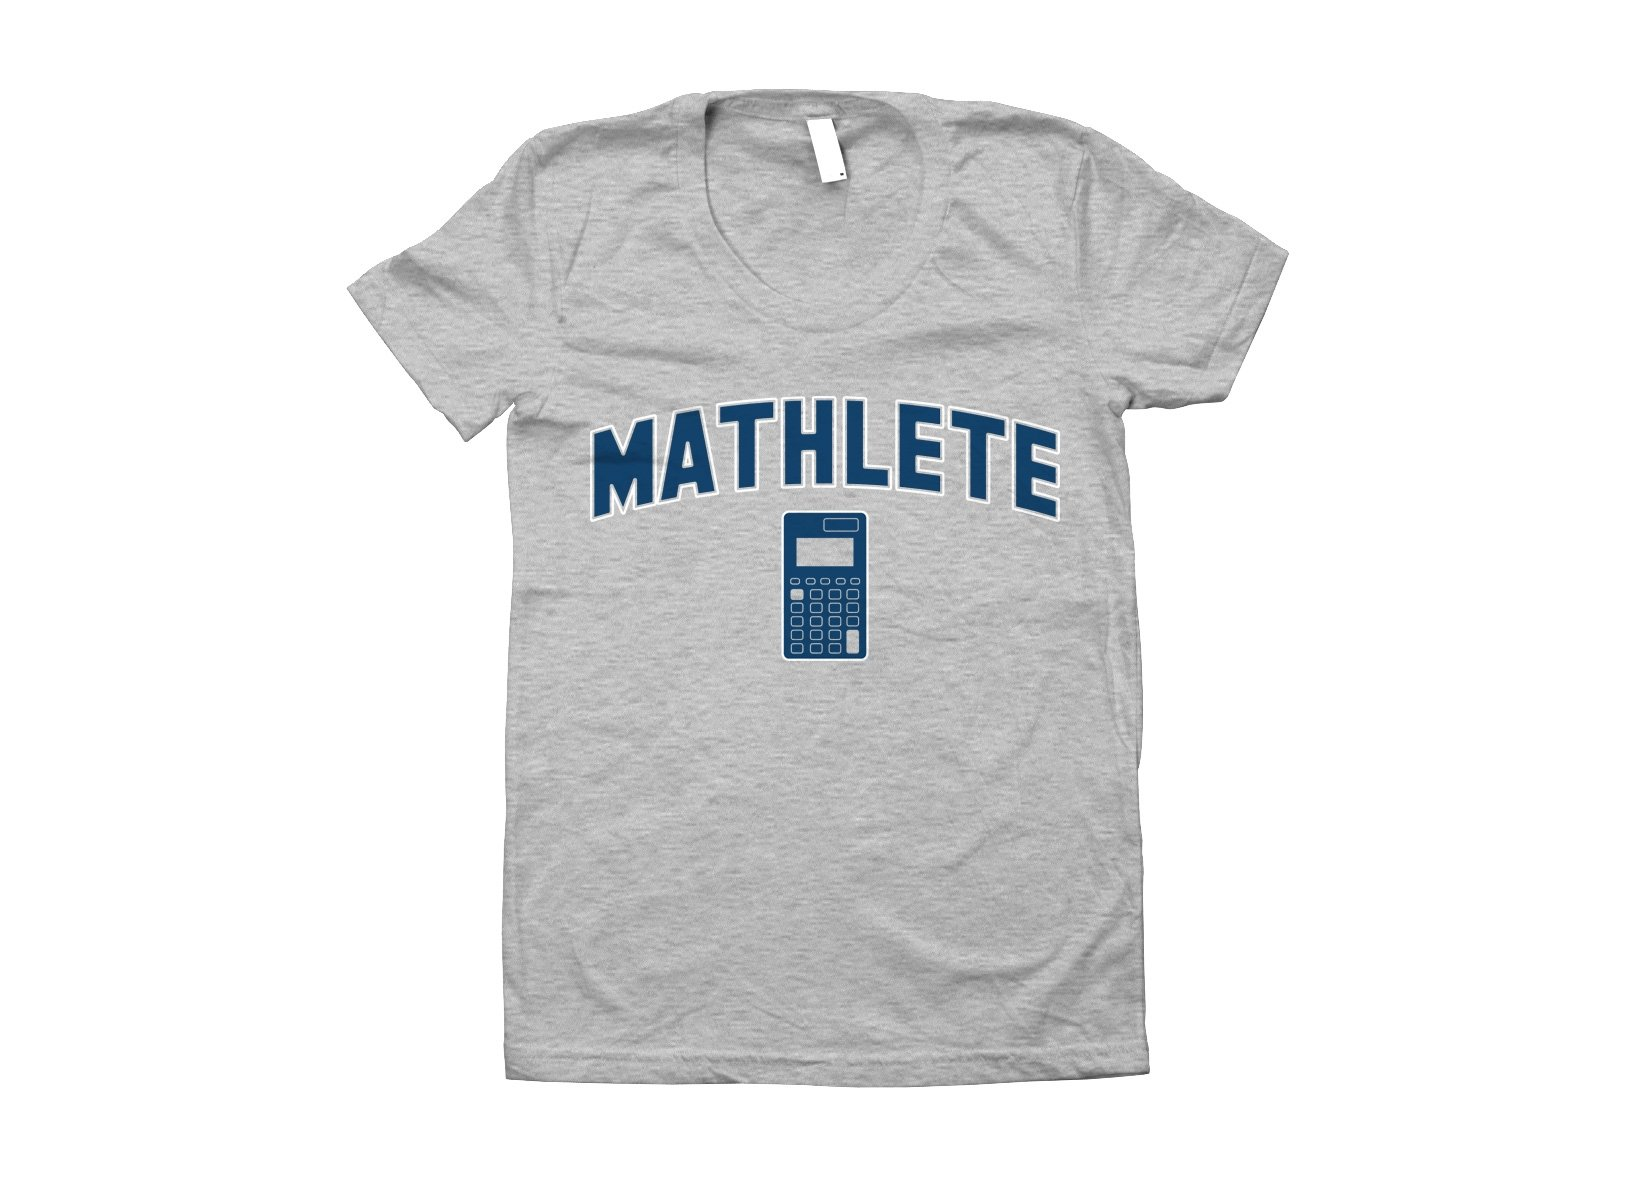 Mathlete on Juniors T-Shirt